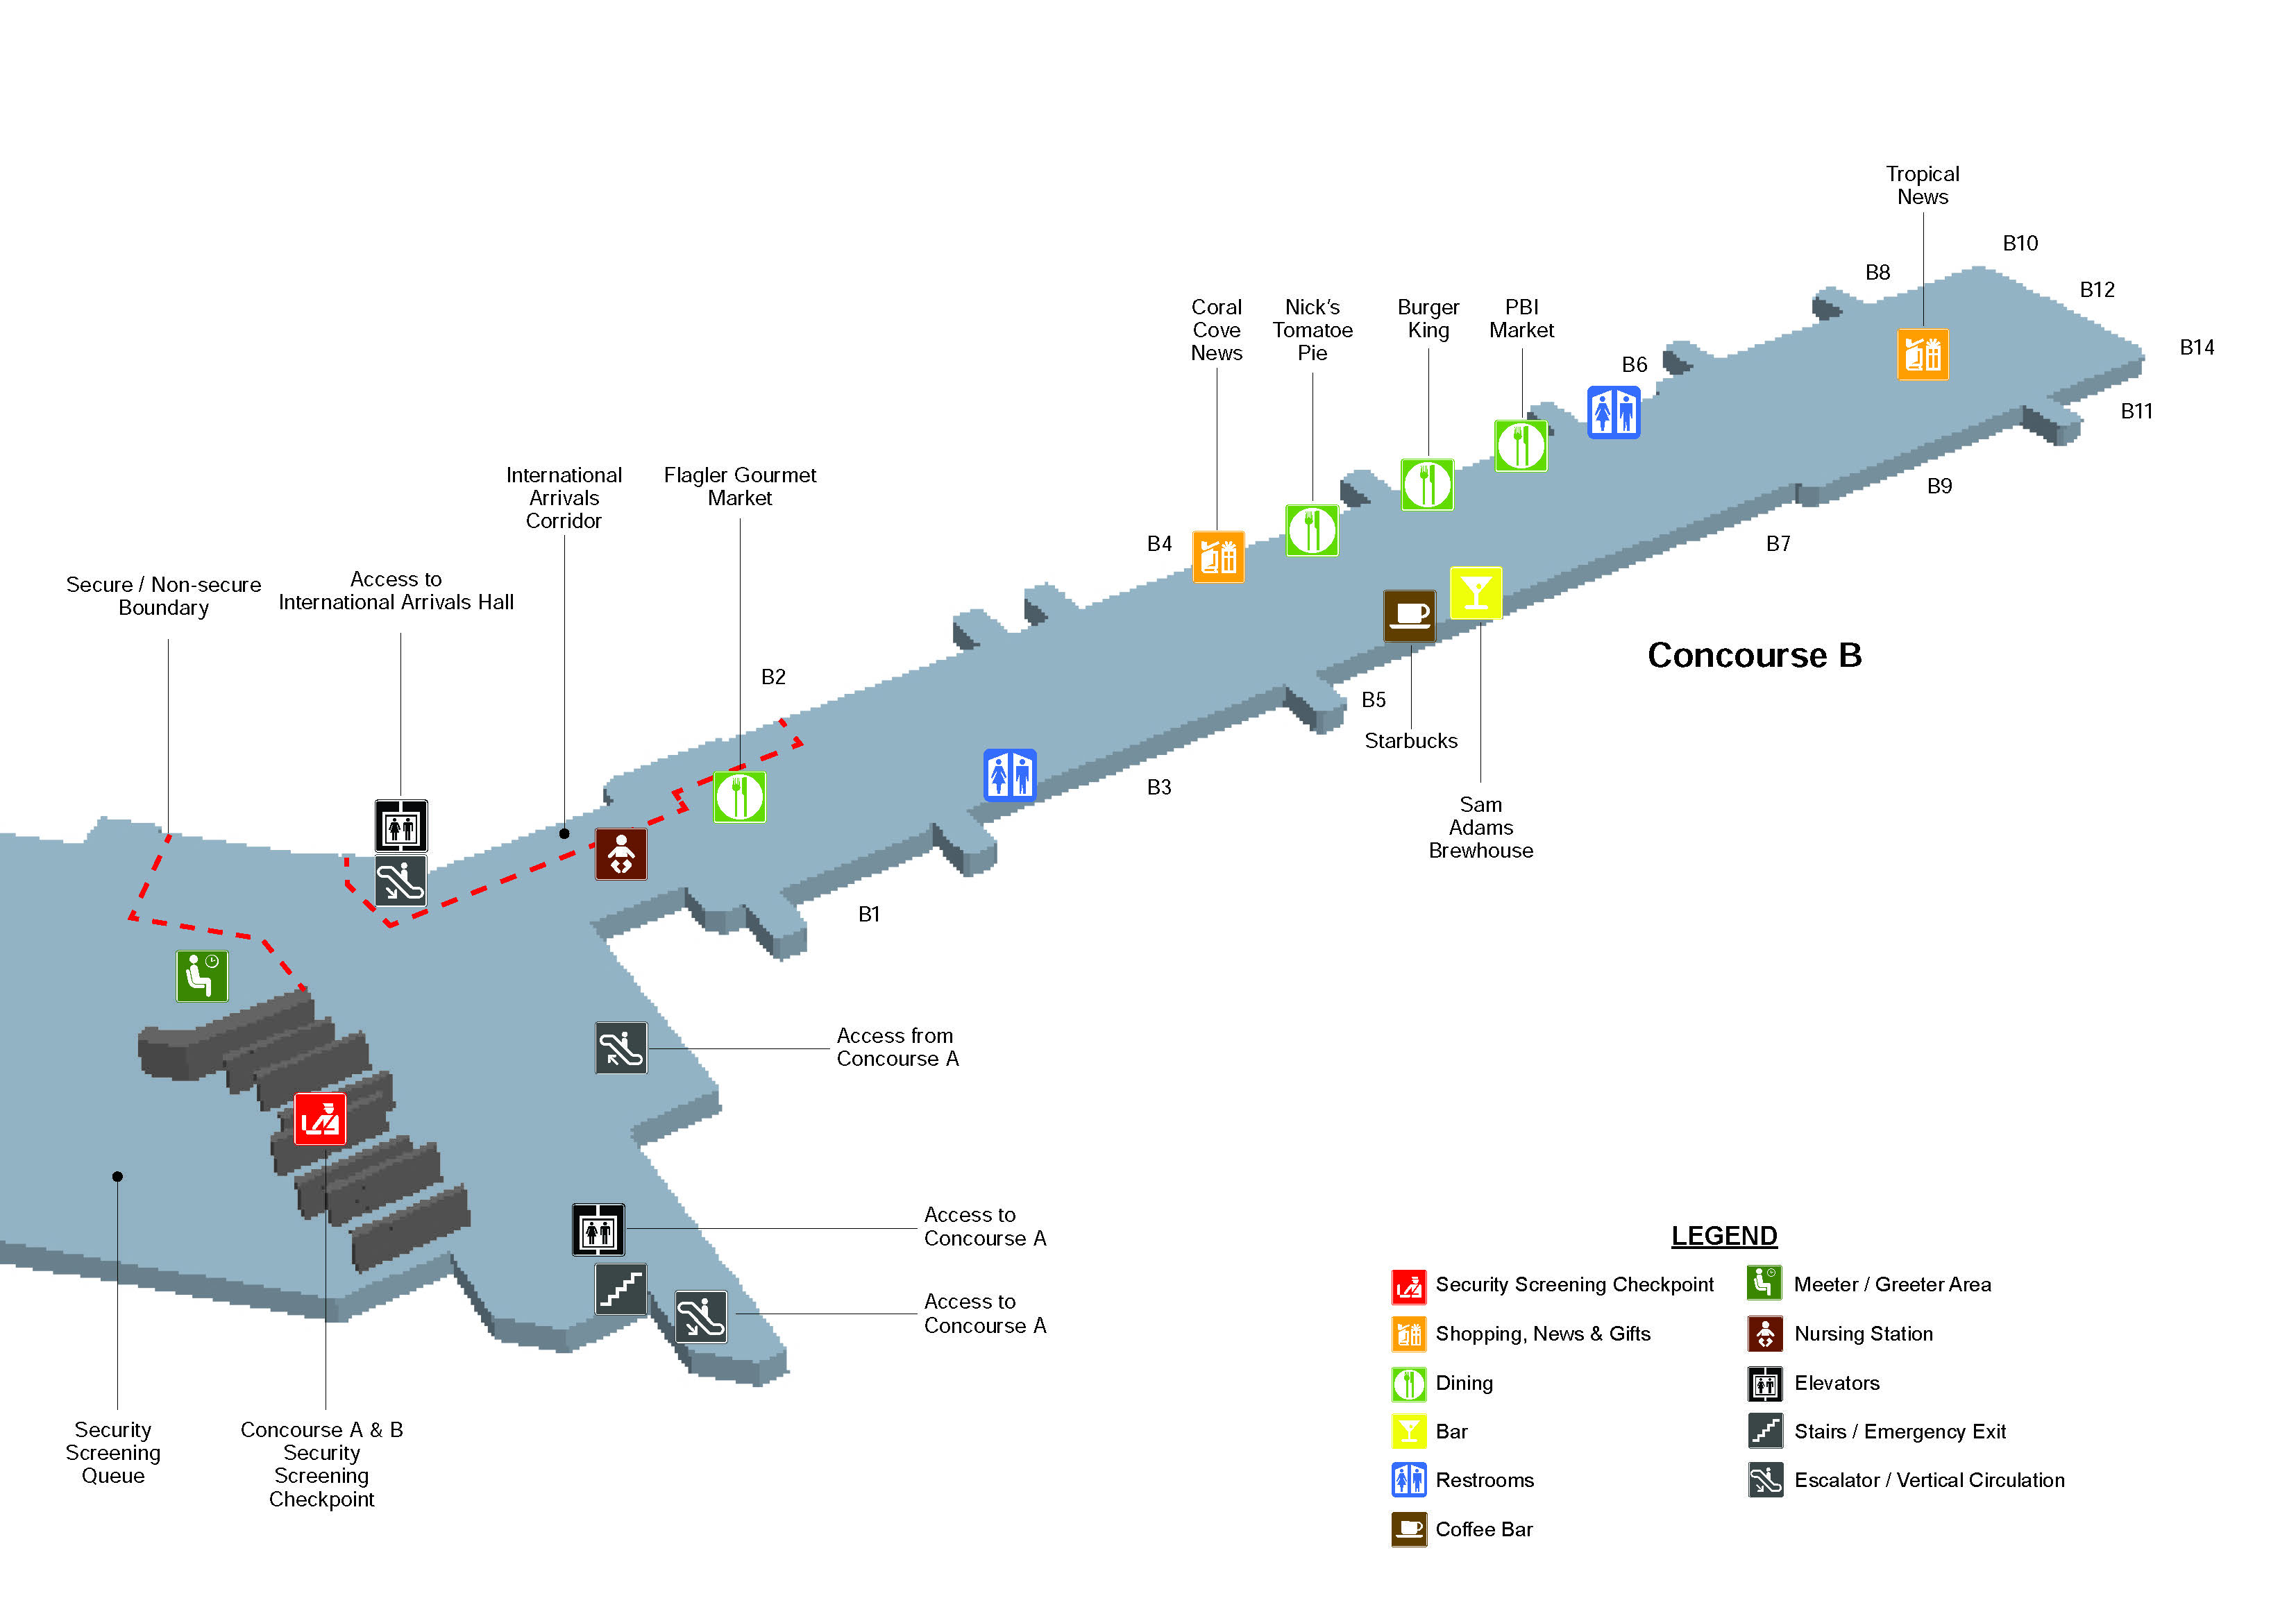 Concourse C Map Level 1 Pbi Terminal